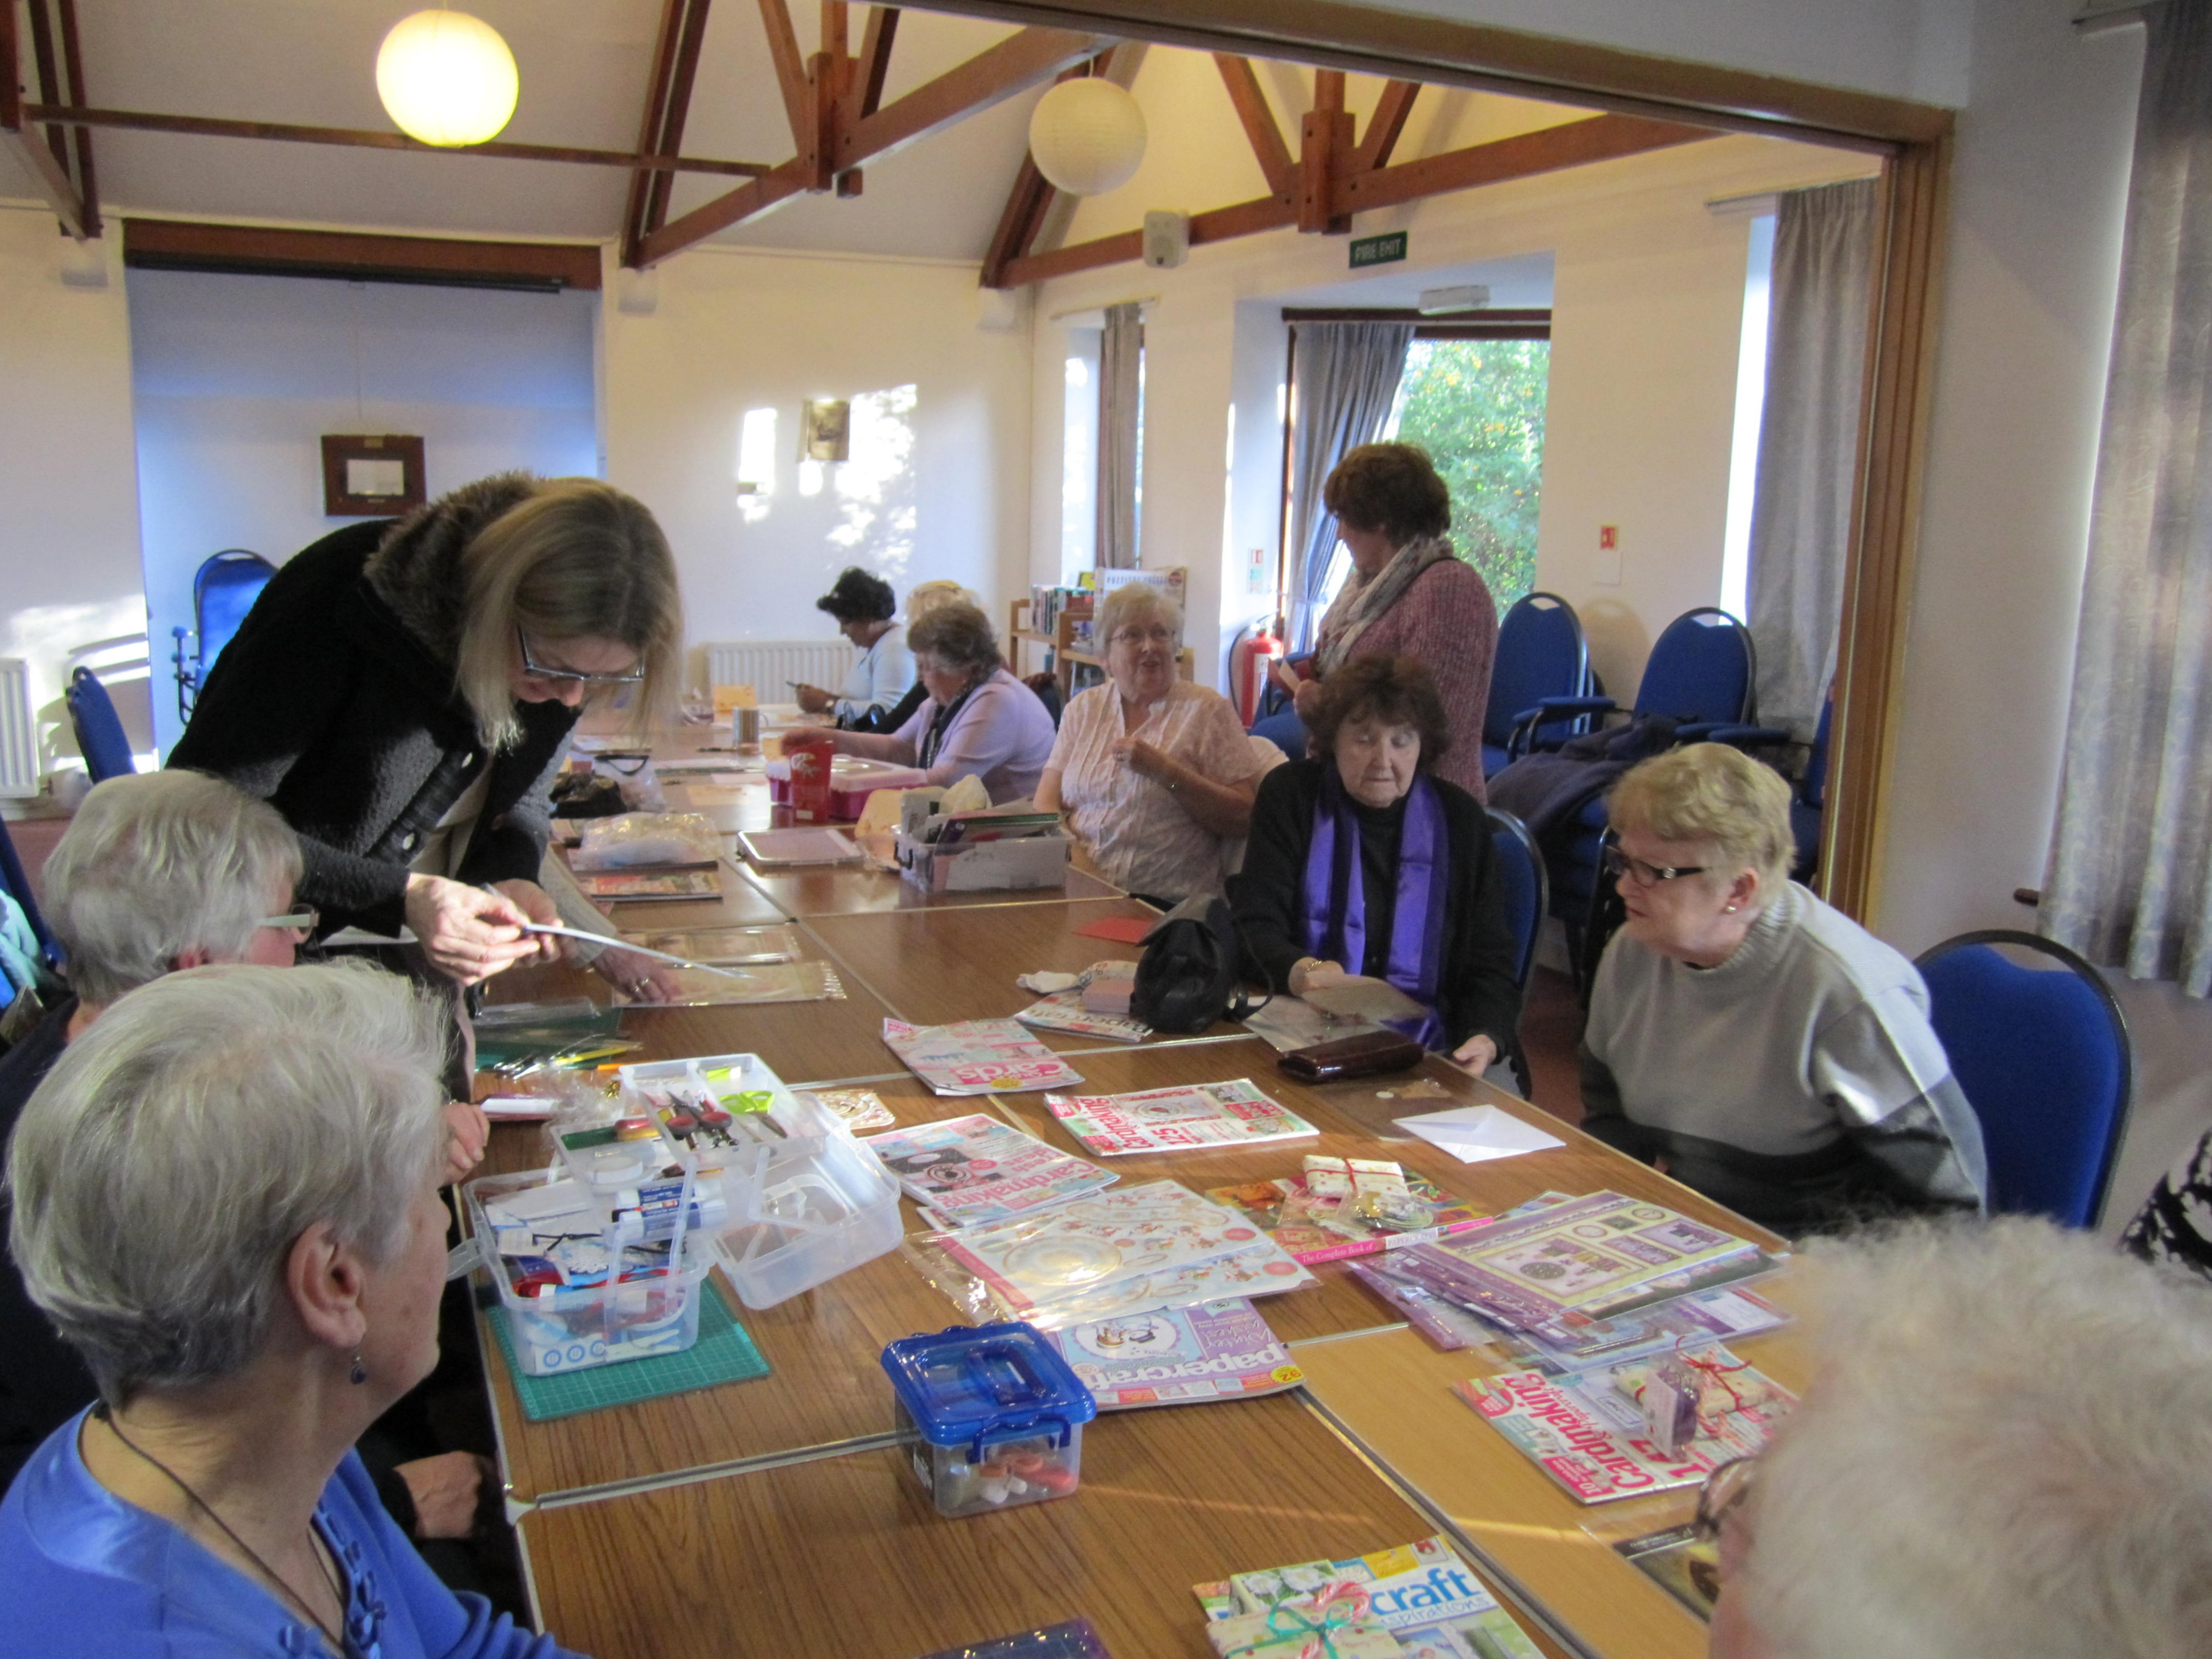 Card makers enjoying their afternoon